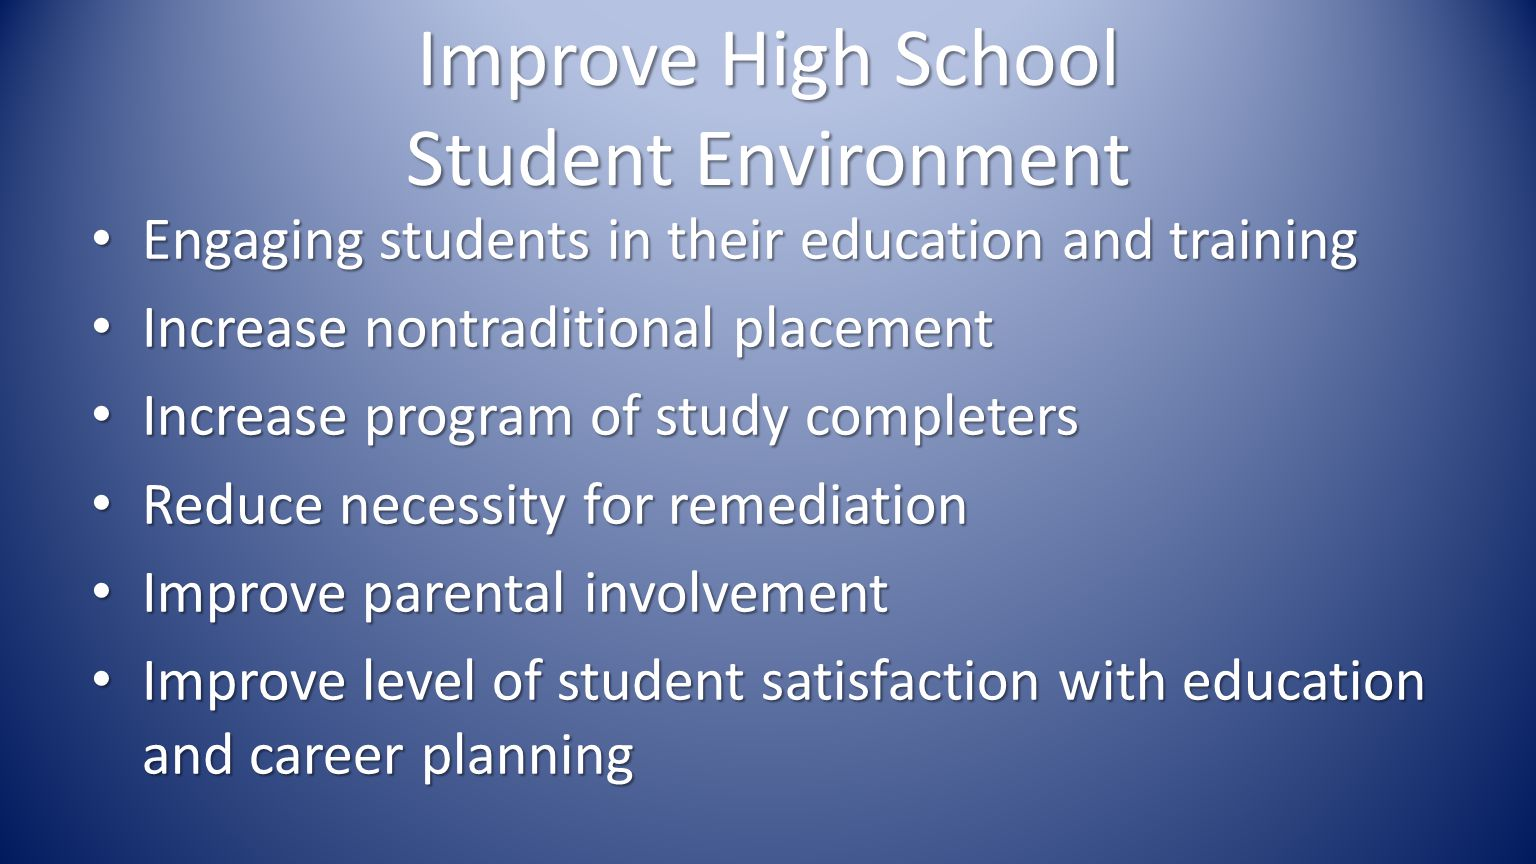 Improve High School Student Environment Engaging students in their education and training Engaging students in their education and training Increase nontraditional placement Increase nontraditional placement Increase program of study completers Increase program of study completers Reduce necessity for remediation Reduce necessity for remediation Improve parental involvement Improve parental involvement Improve level of student satisfaction with education and career planning Improve level of student satisfaction with education and career planning